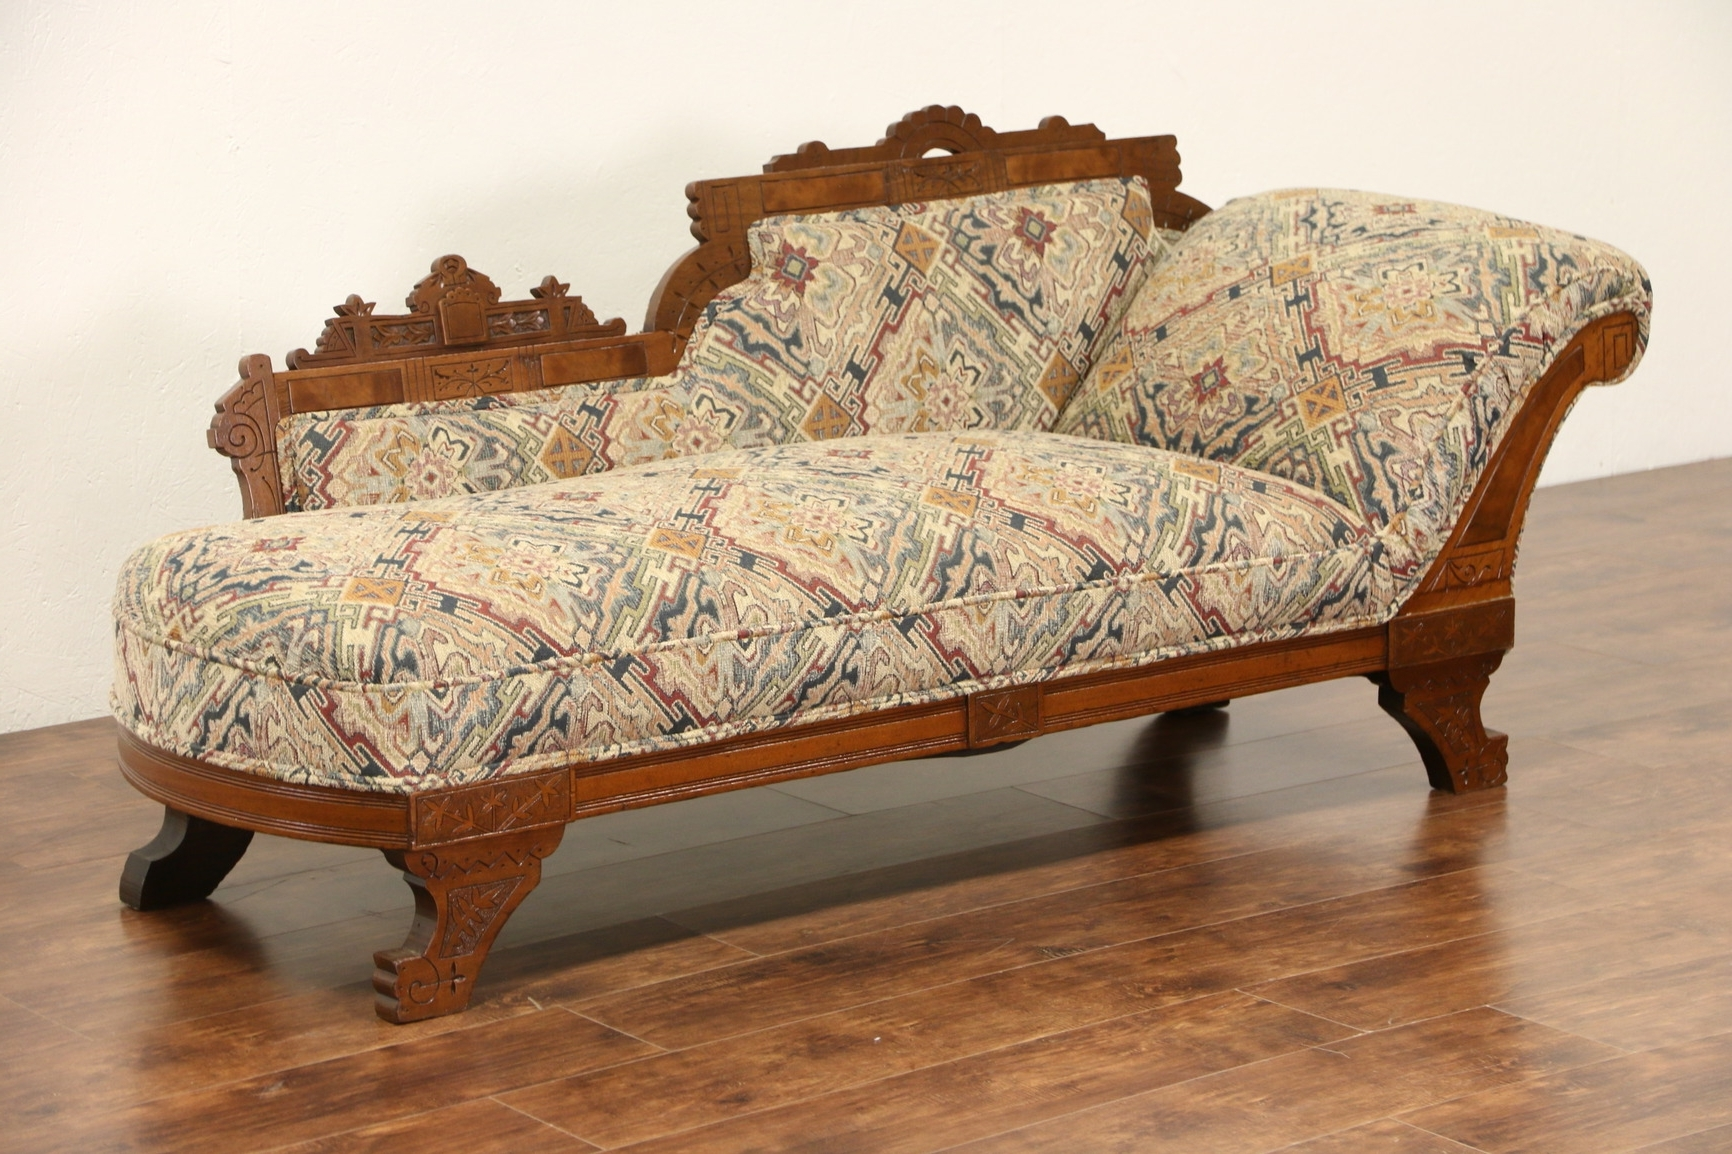 Antique Chaise Lounge Chairs Inside Current Sold – Victorian Eastlake 1880 Antique Chaise Lounge Or Fainting (View 13 of 15)